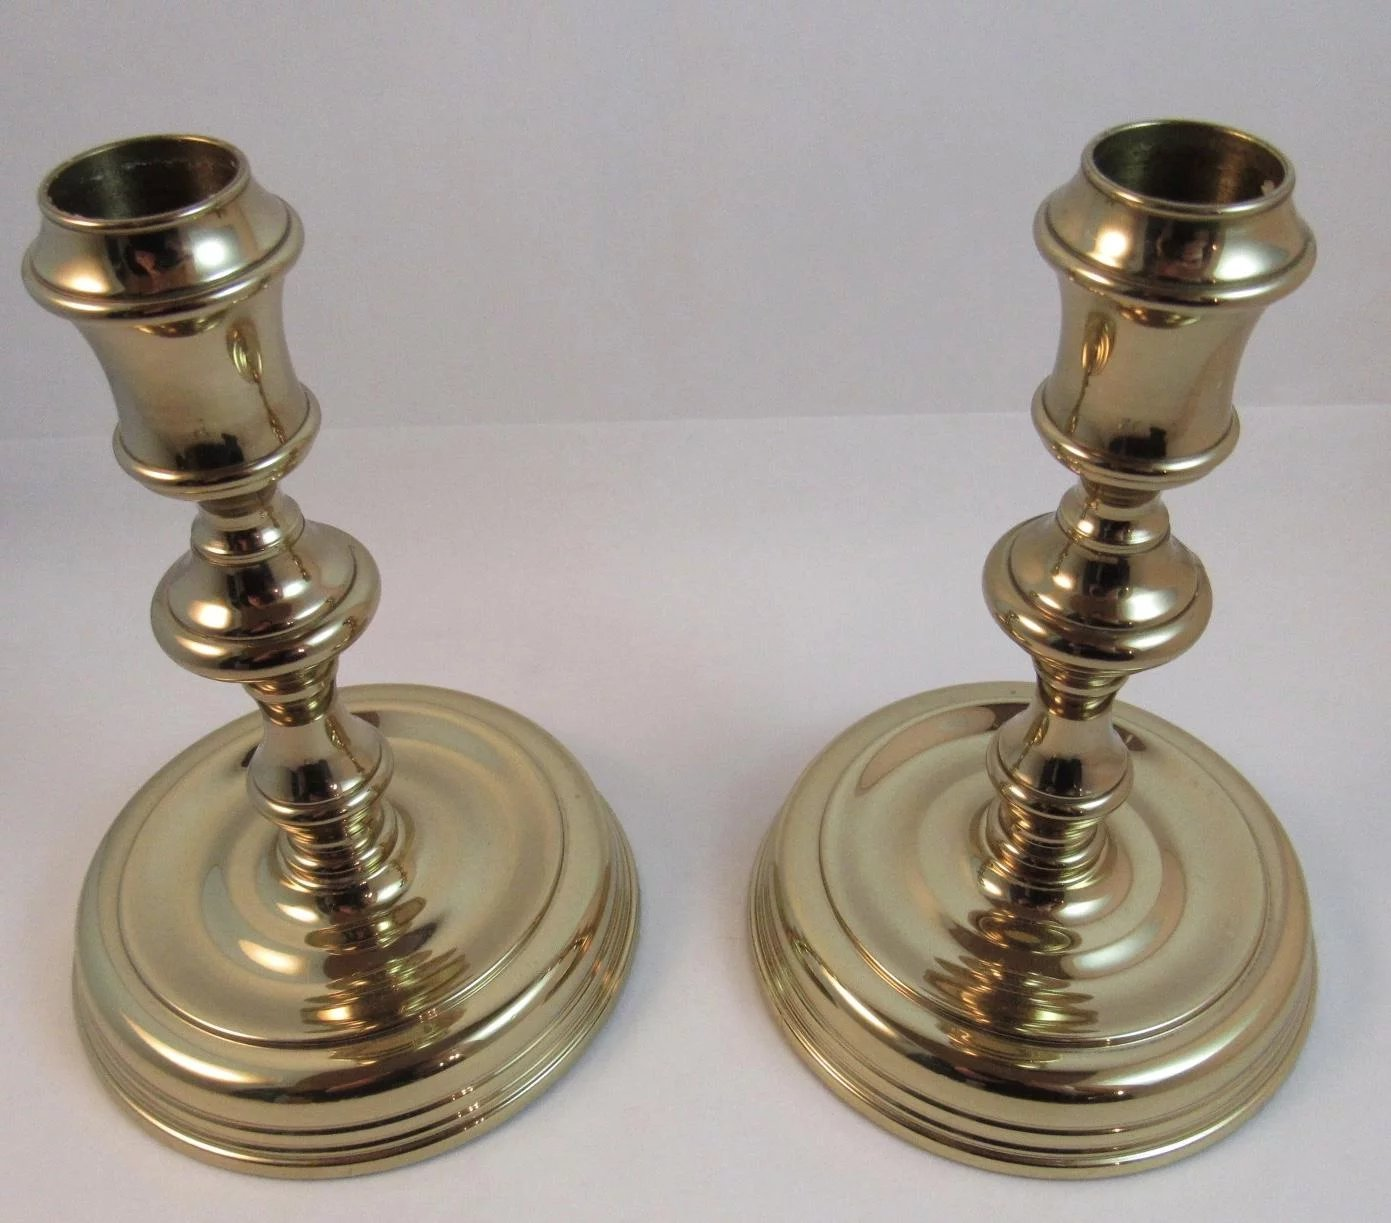 Baldwin Brass Candlesticks Forged in America Candle ...